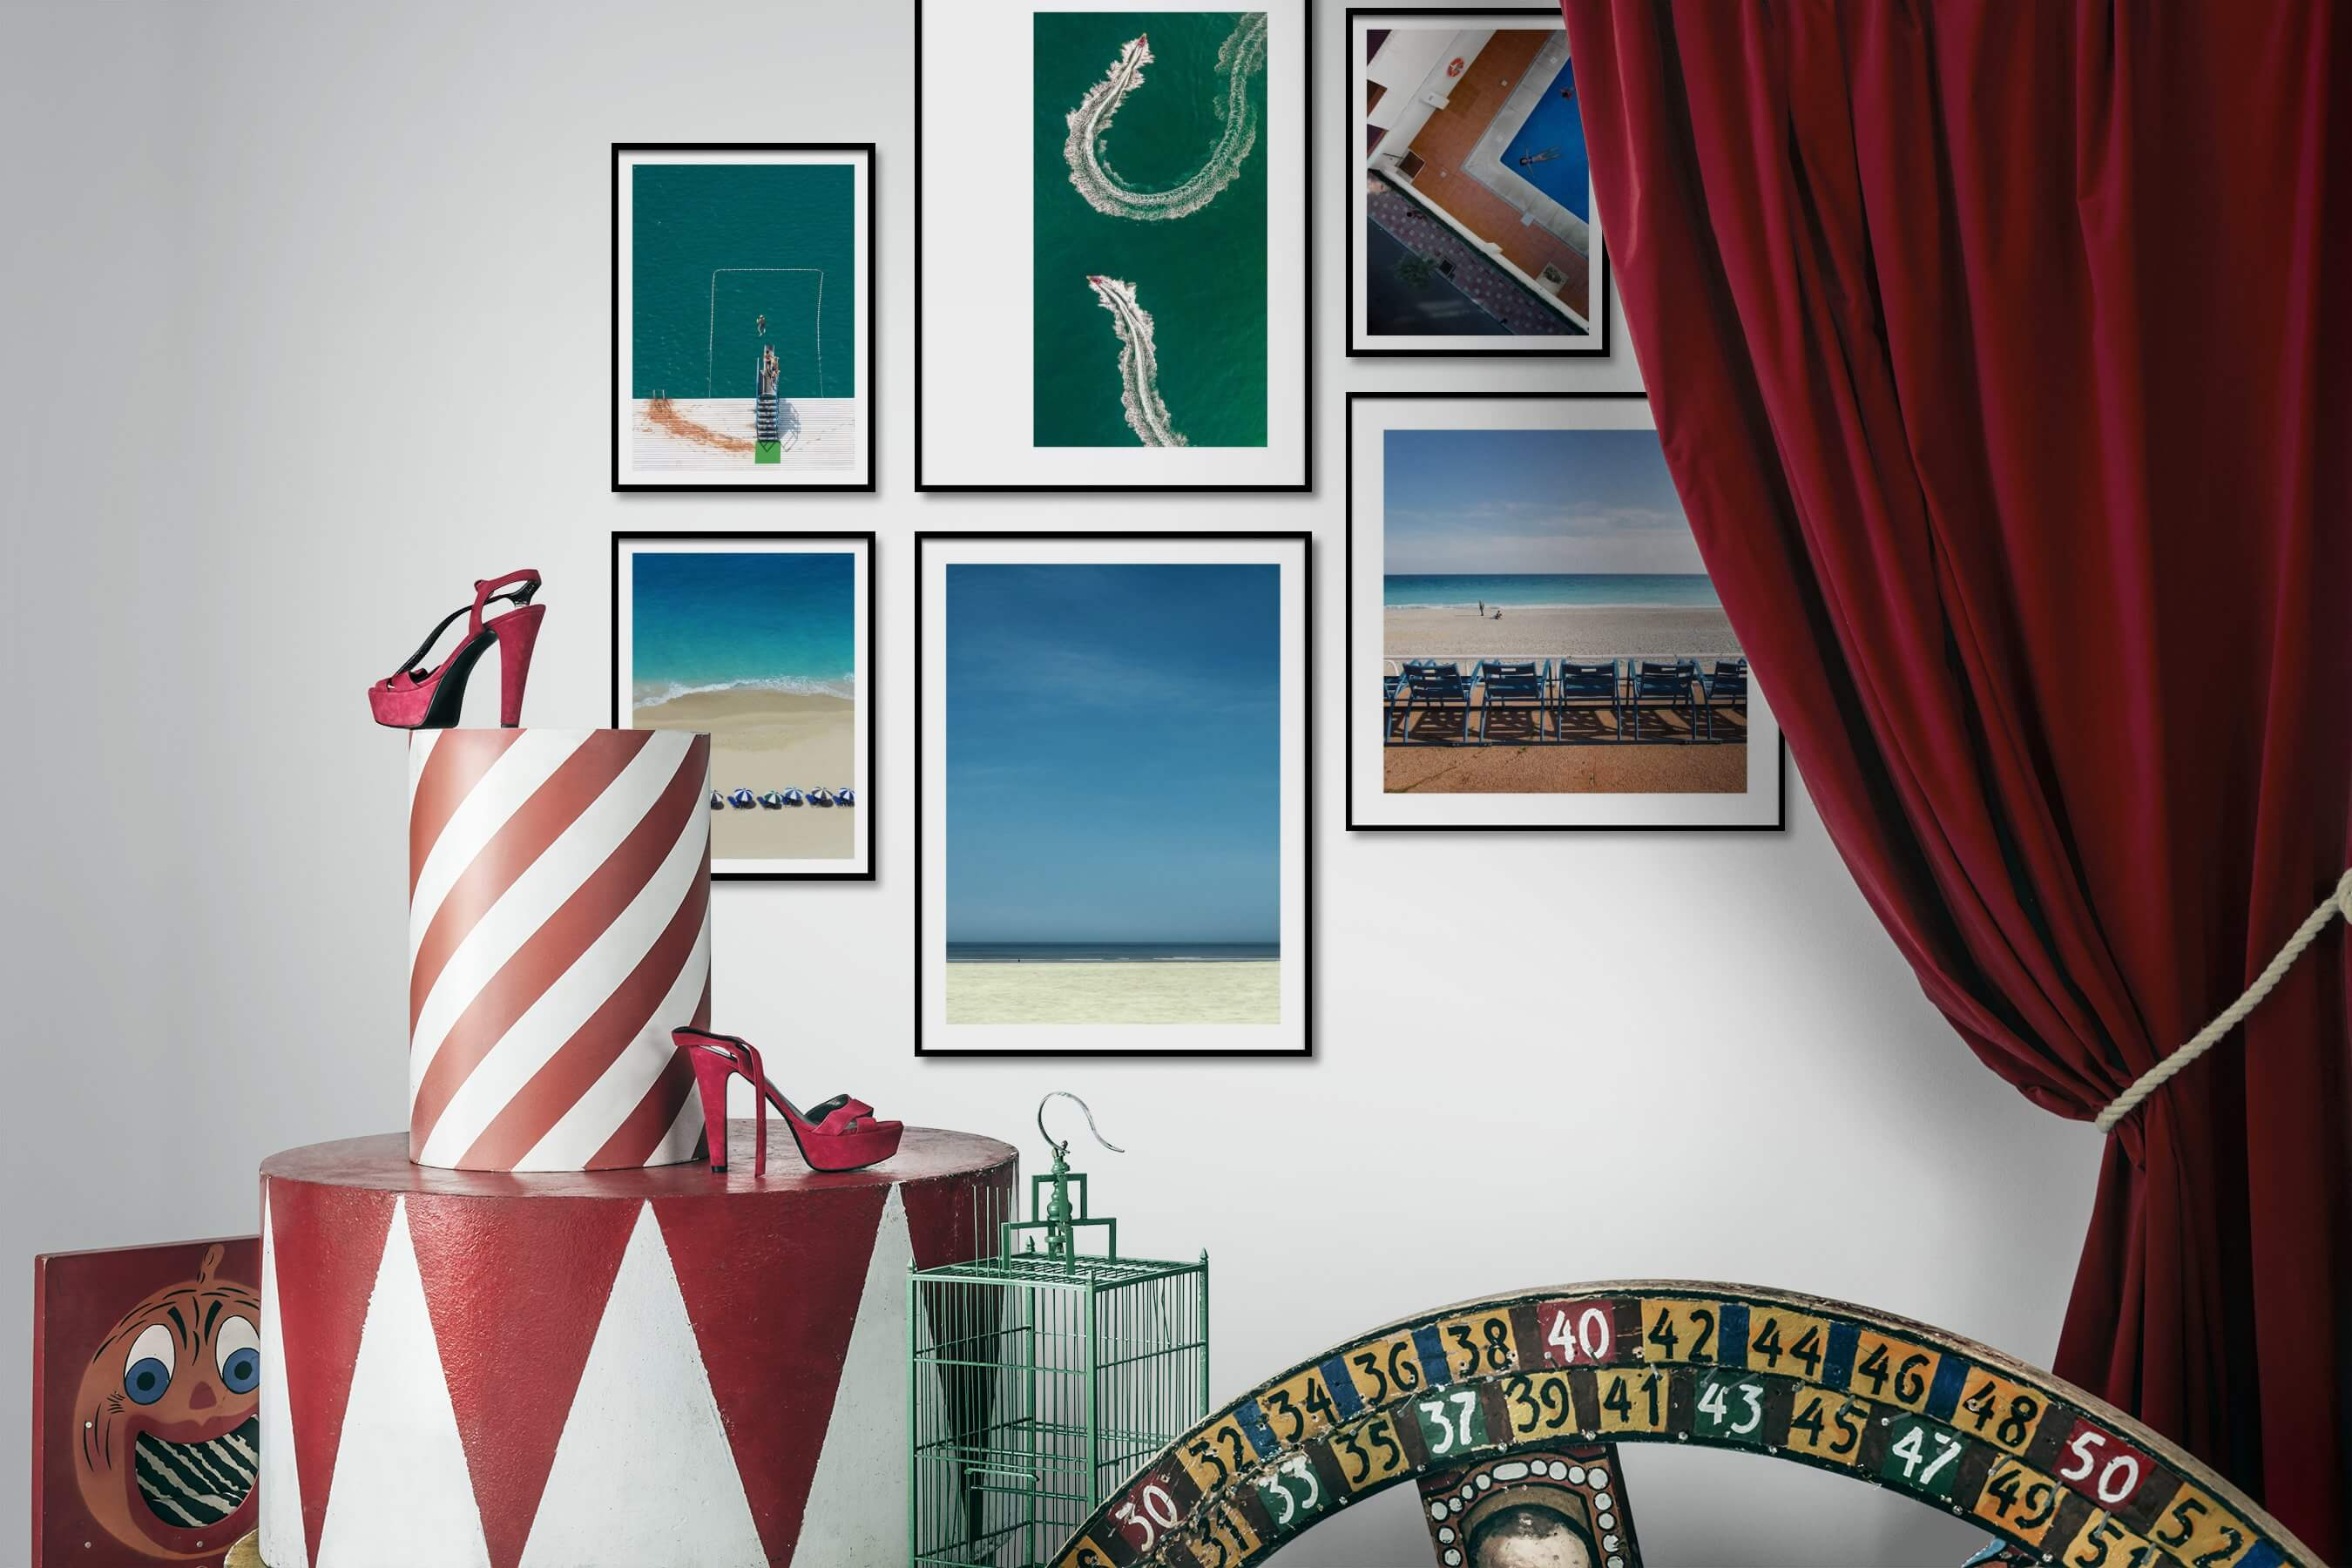 Gallery wall idea with six framed pictures arranged on a wall depicting Beach & Water, For the Minimalist, For the Moderate, and Vintage